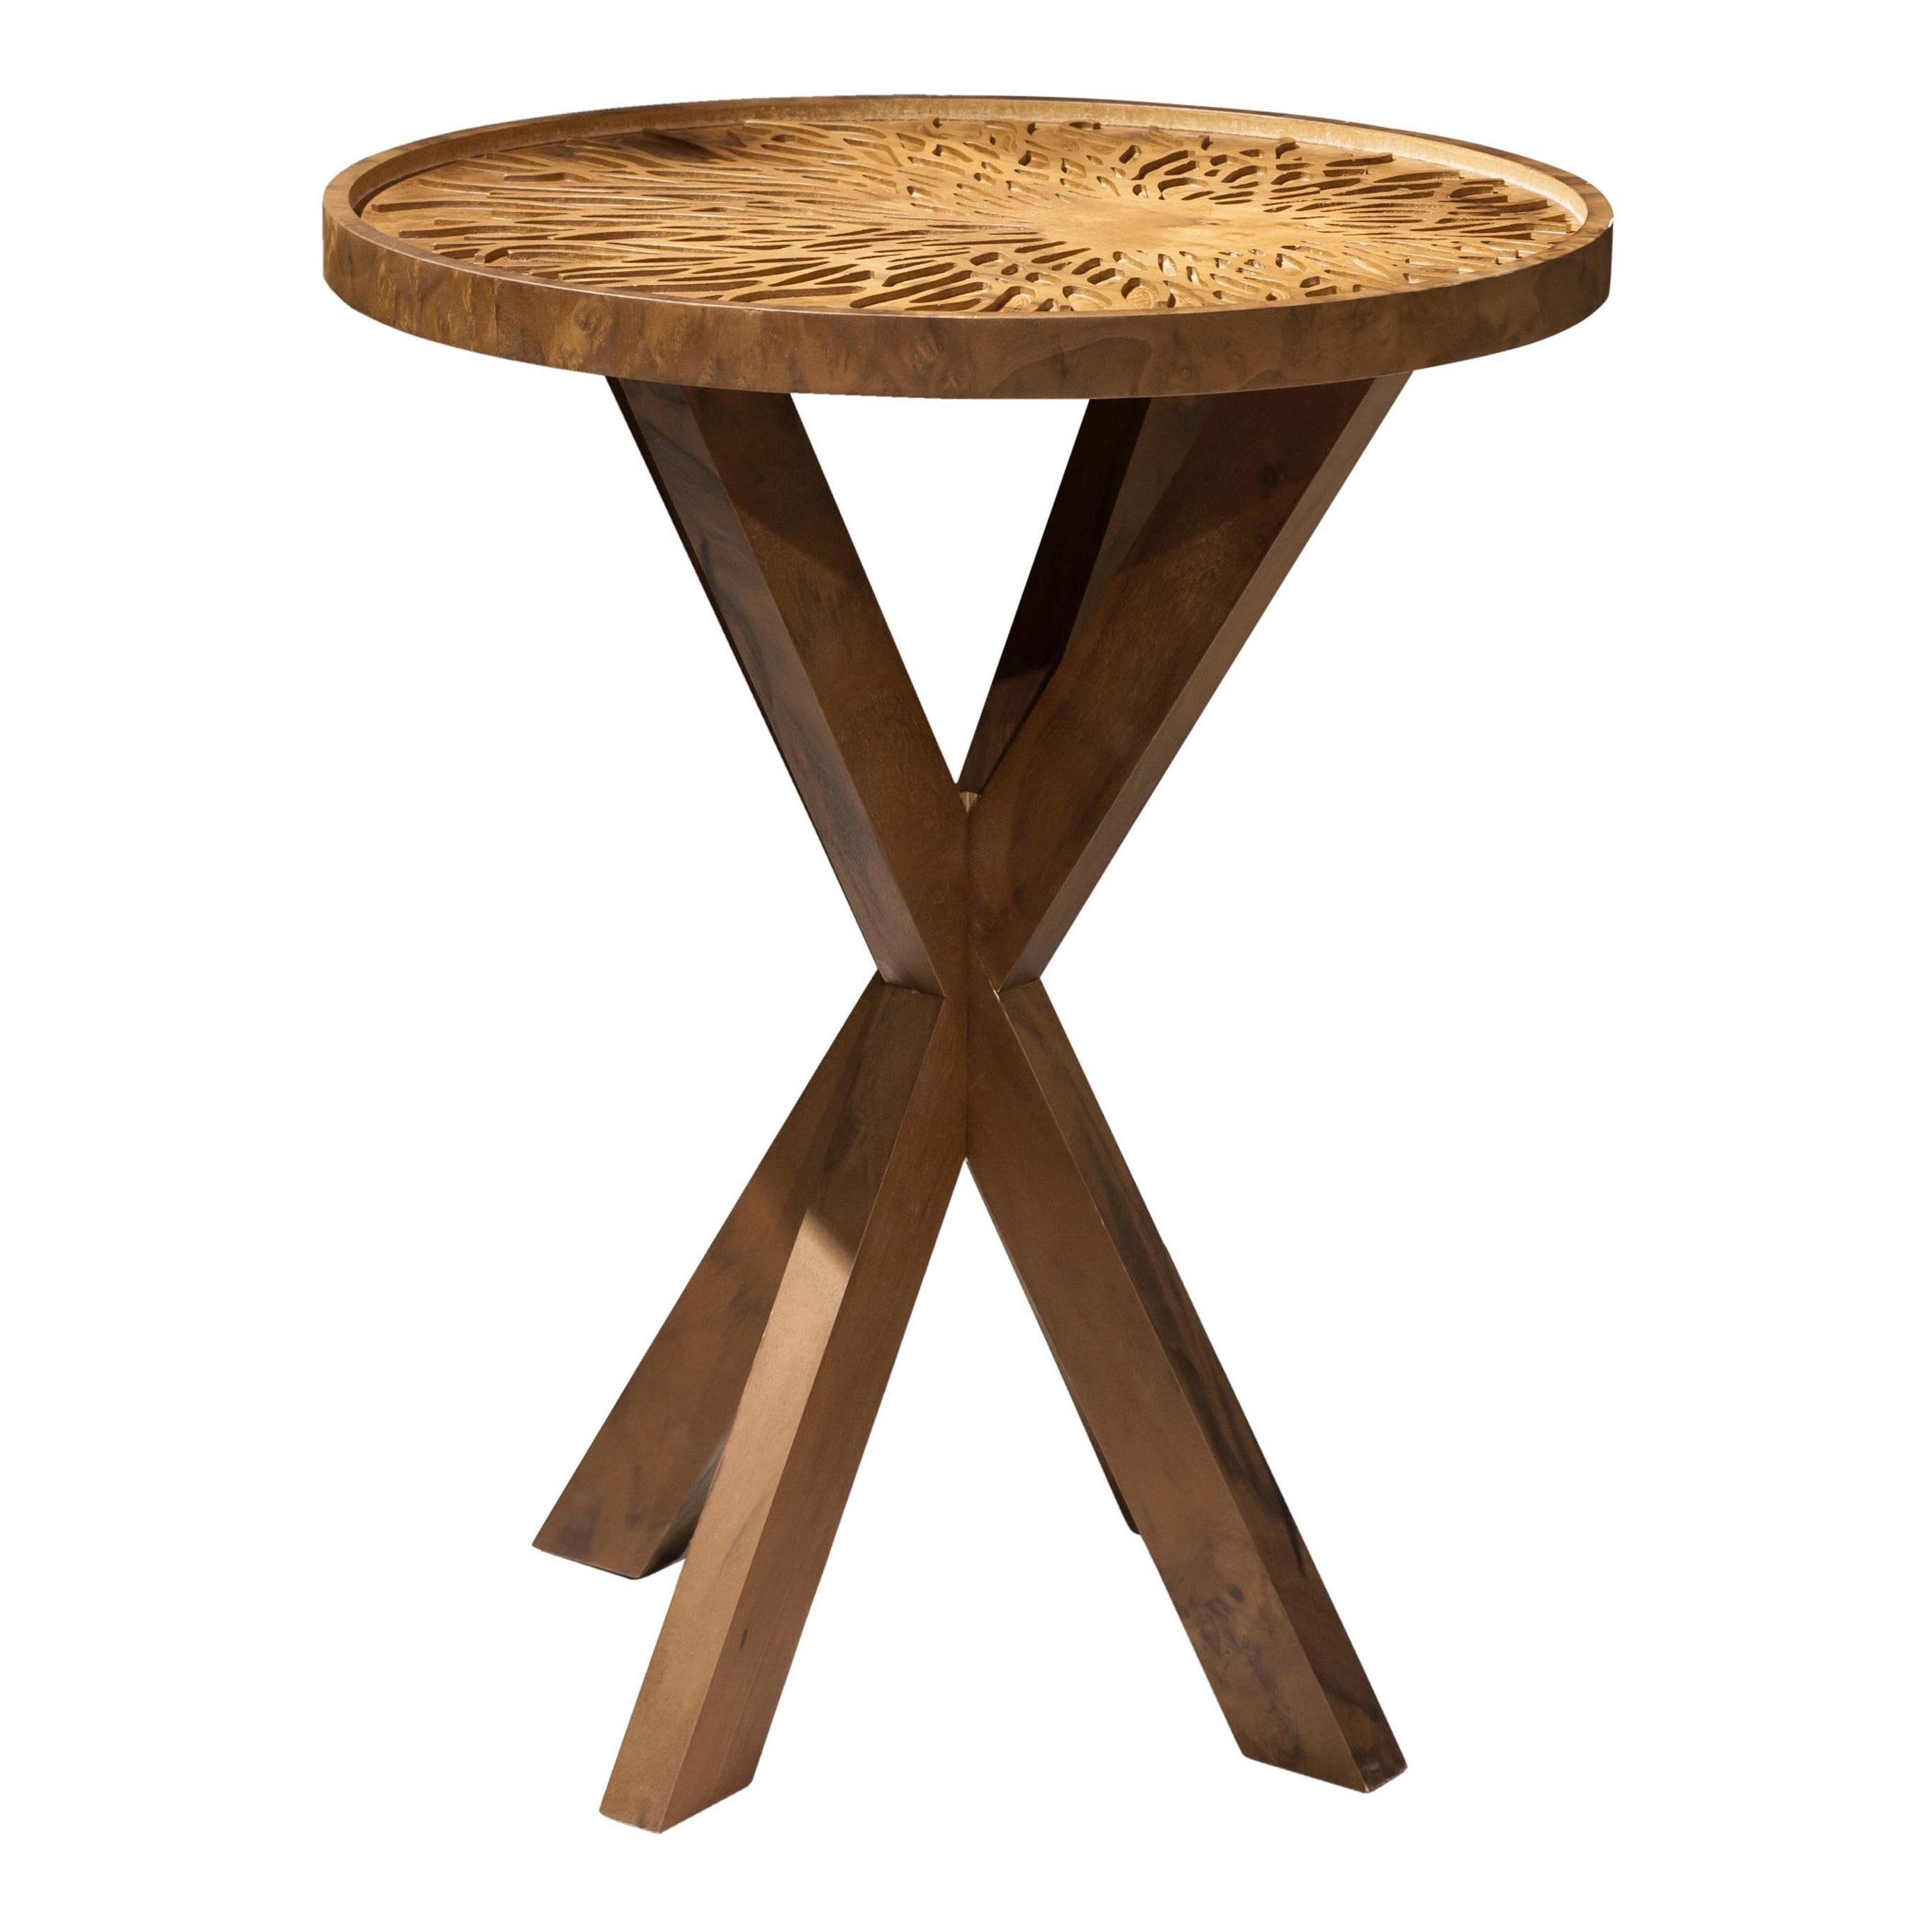 Dali Side Table, Solid Walnut Wood Engraved Side Table